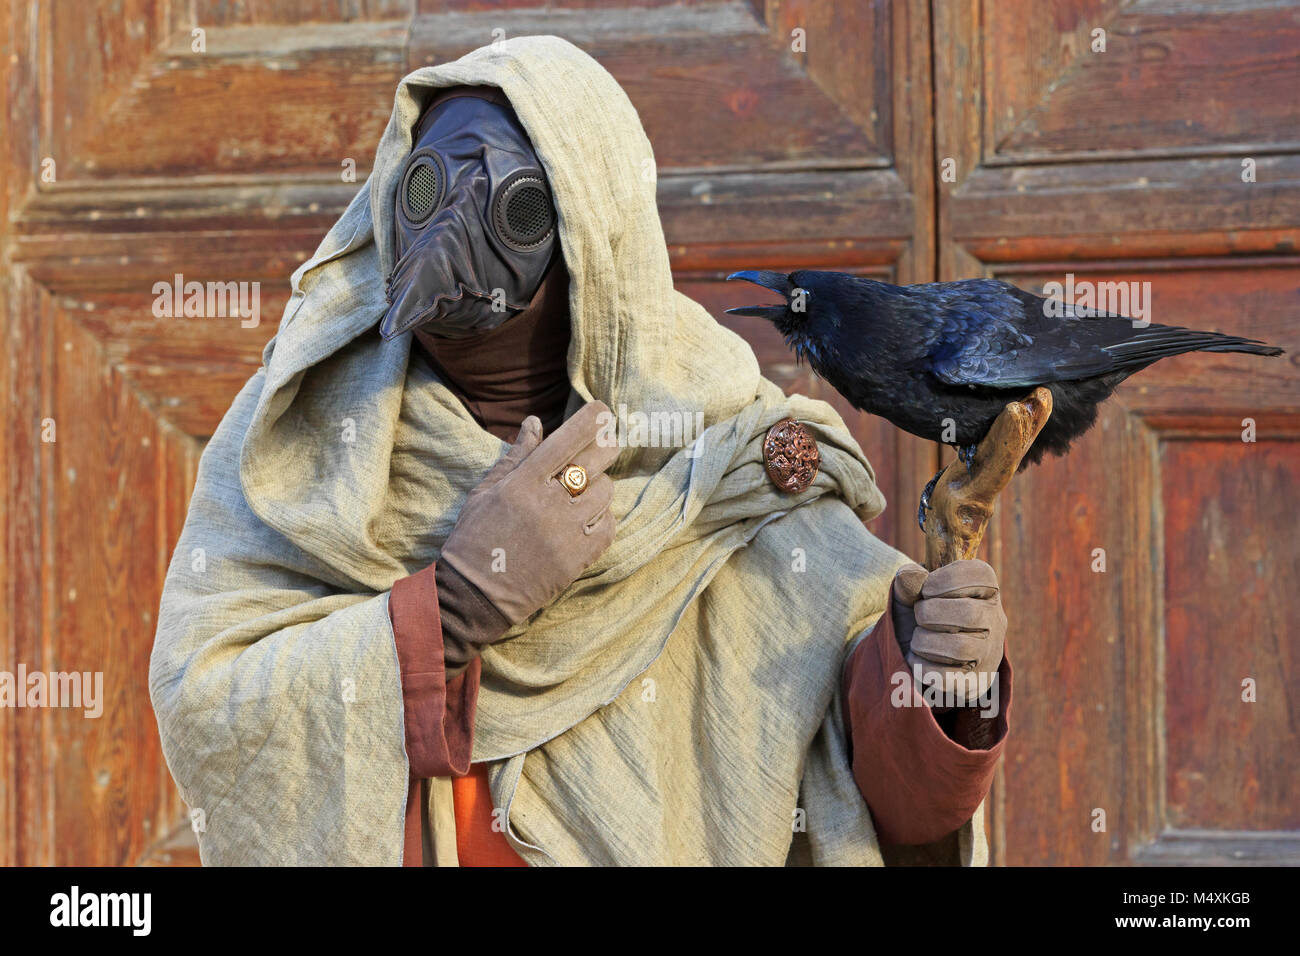 A plage doctor with a black raven during the Carnival of Venice (Carnevale di Venezia) in Venice, Italy - Stock Image